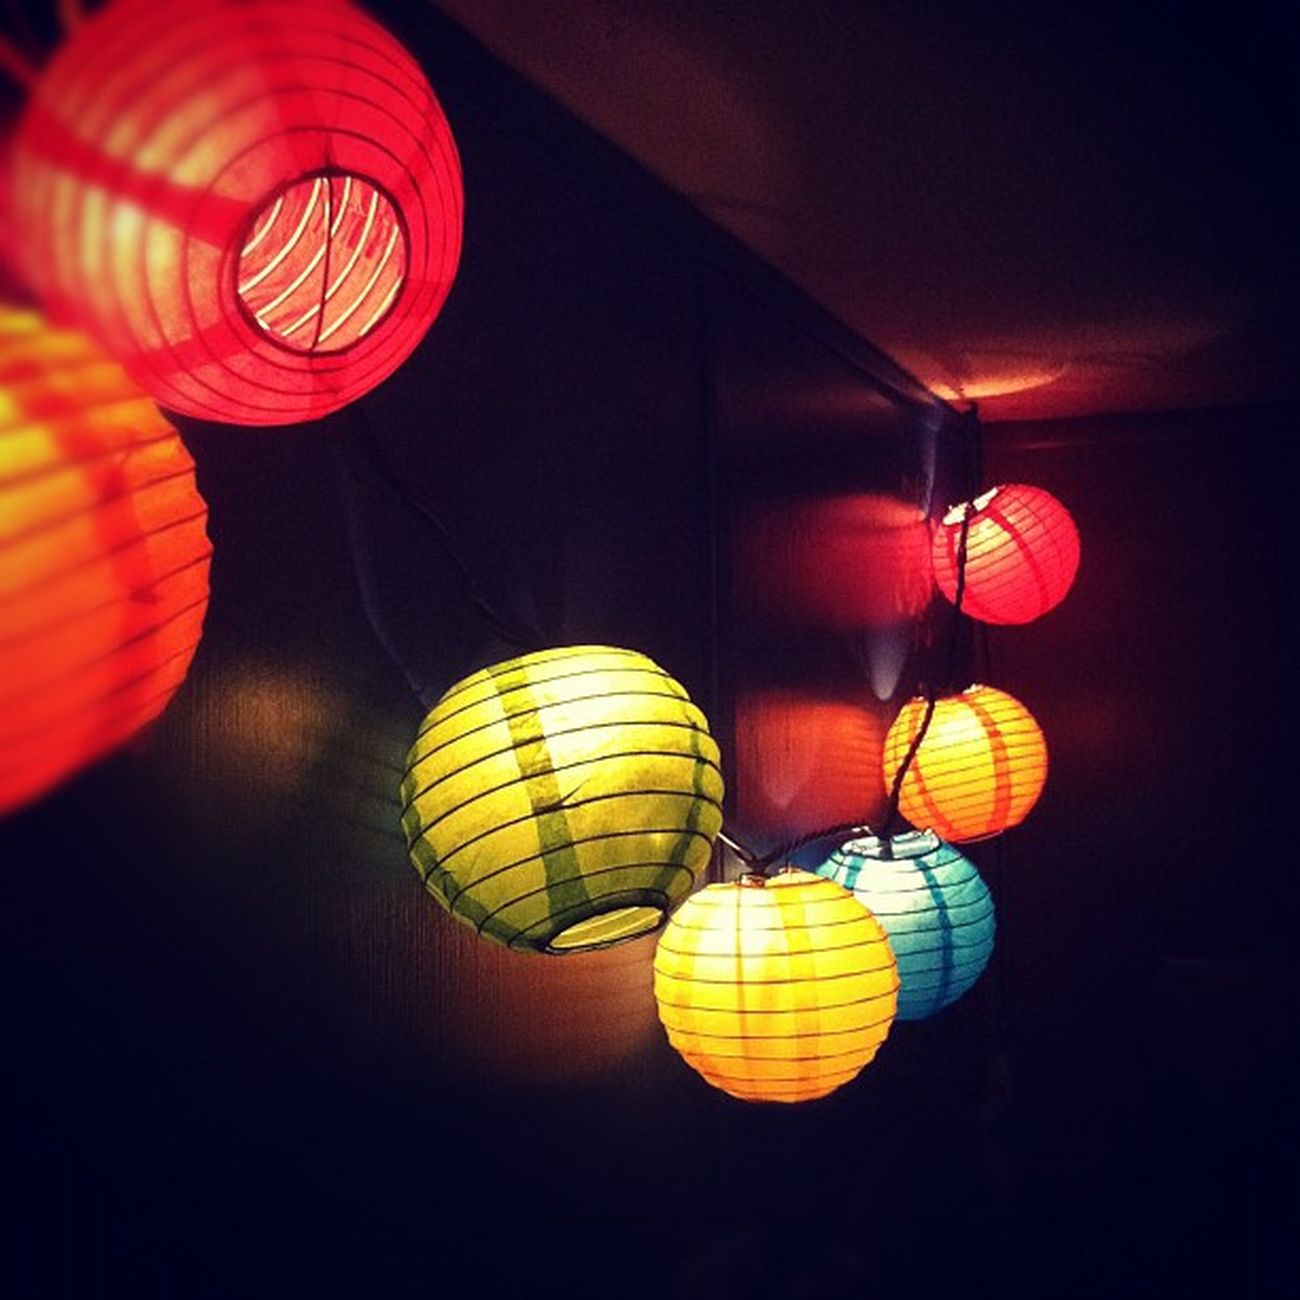 Color is the presence of life. Aprilphotoaday April Day2 Colour color hudson blur lantern paperlantern lights ig igers igdaily igaddict instagram instafeed instamood instadaily instaaddict challenge iphone4 iphonesia iphoneonly iphonegraphy iphonegrapher